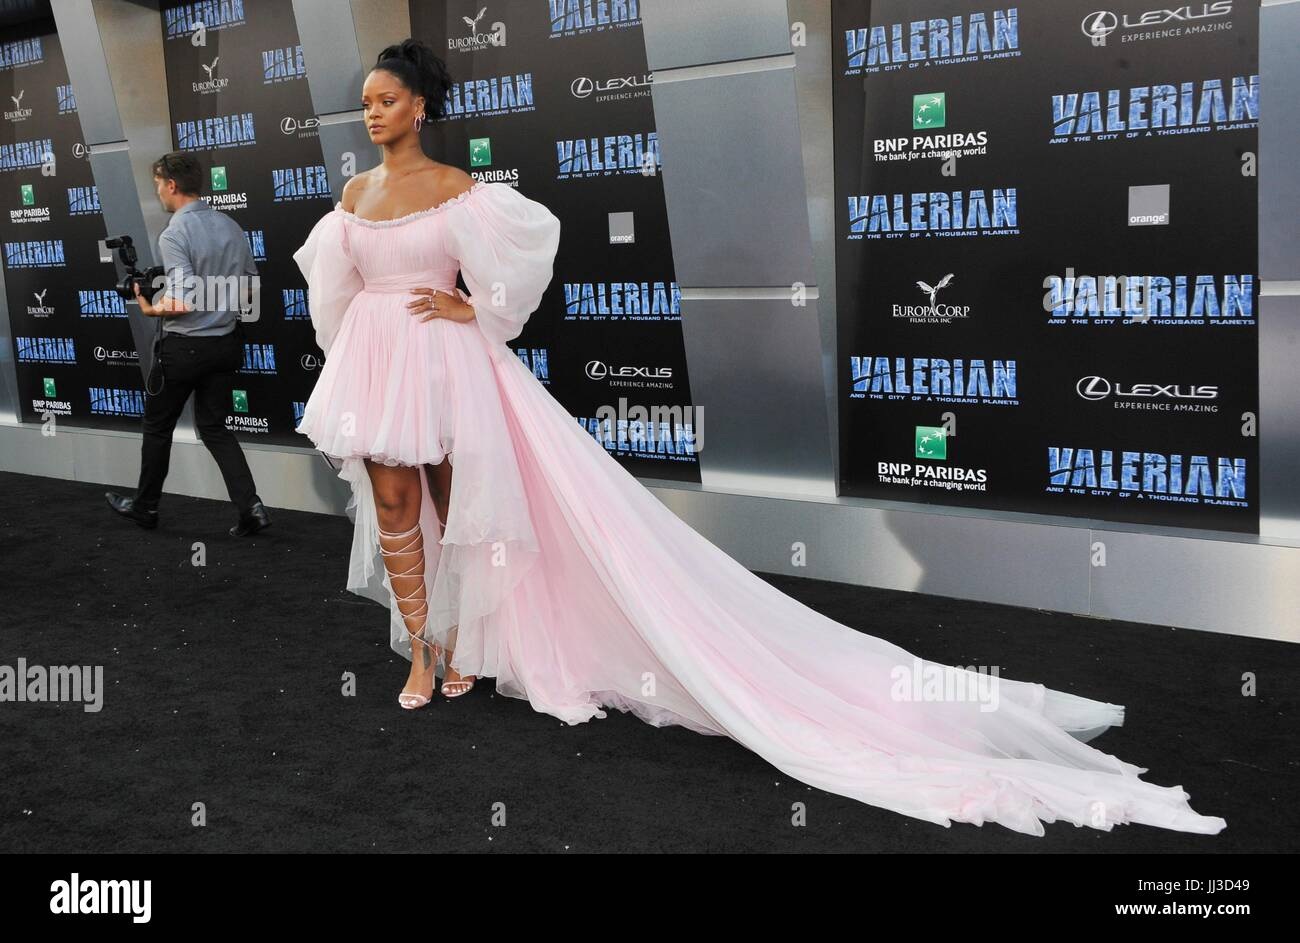 Los Angeles, CA, USA. 17th July, 2017. Rihanna at arrivals for VALERIAN AND THE CITY OF A THOUSAND PLANETS Premiere, Stock Photo